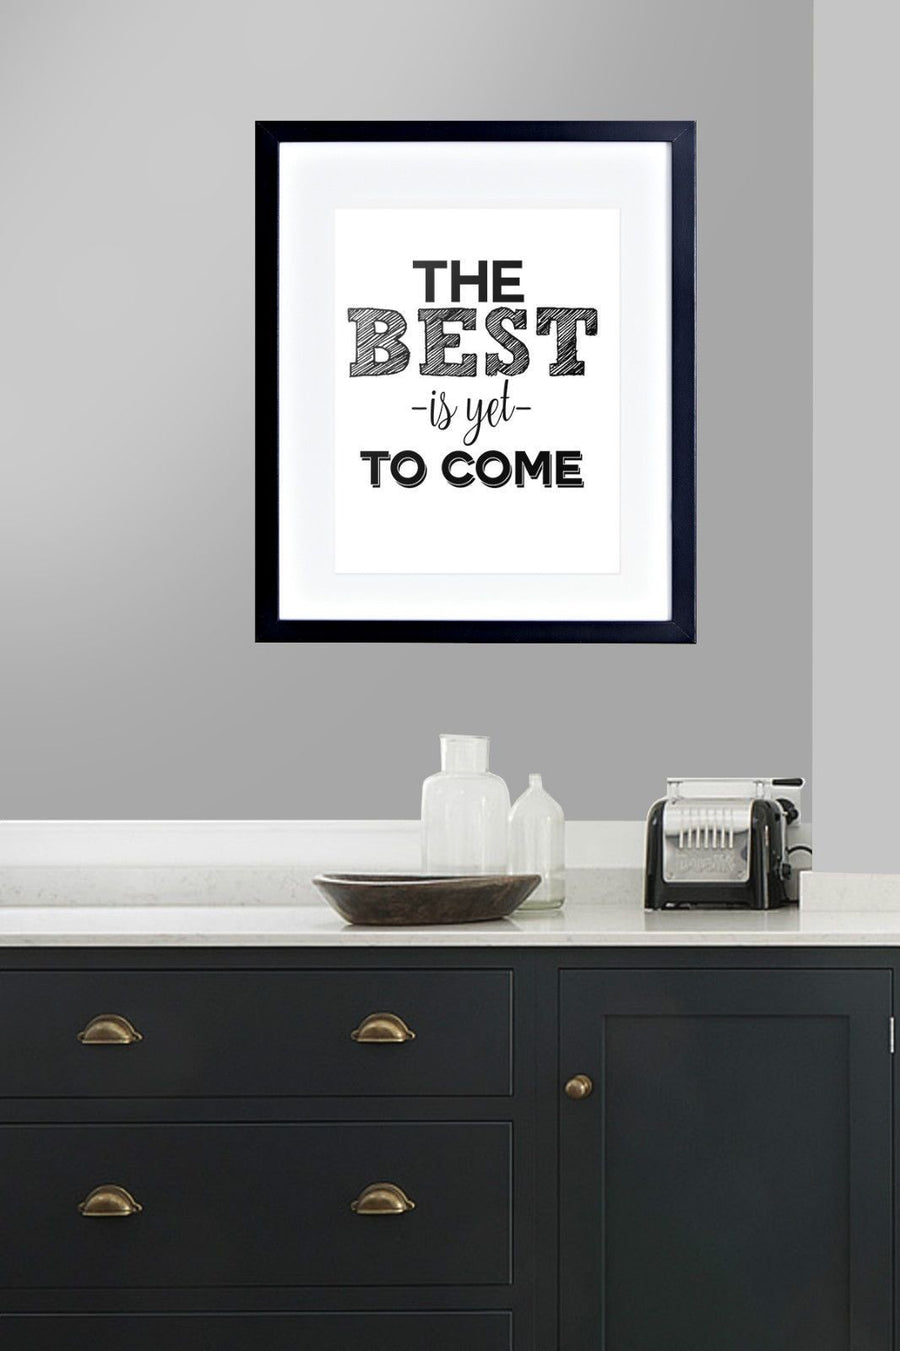 The best Is Yet to Come Motivation Poster Print Family Framed Mounted Gift 249